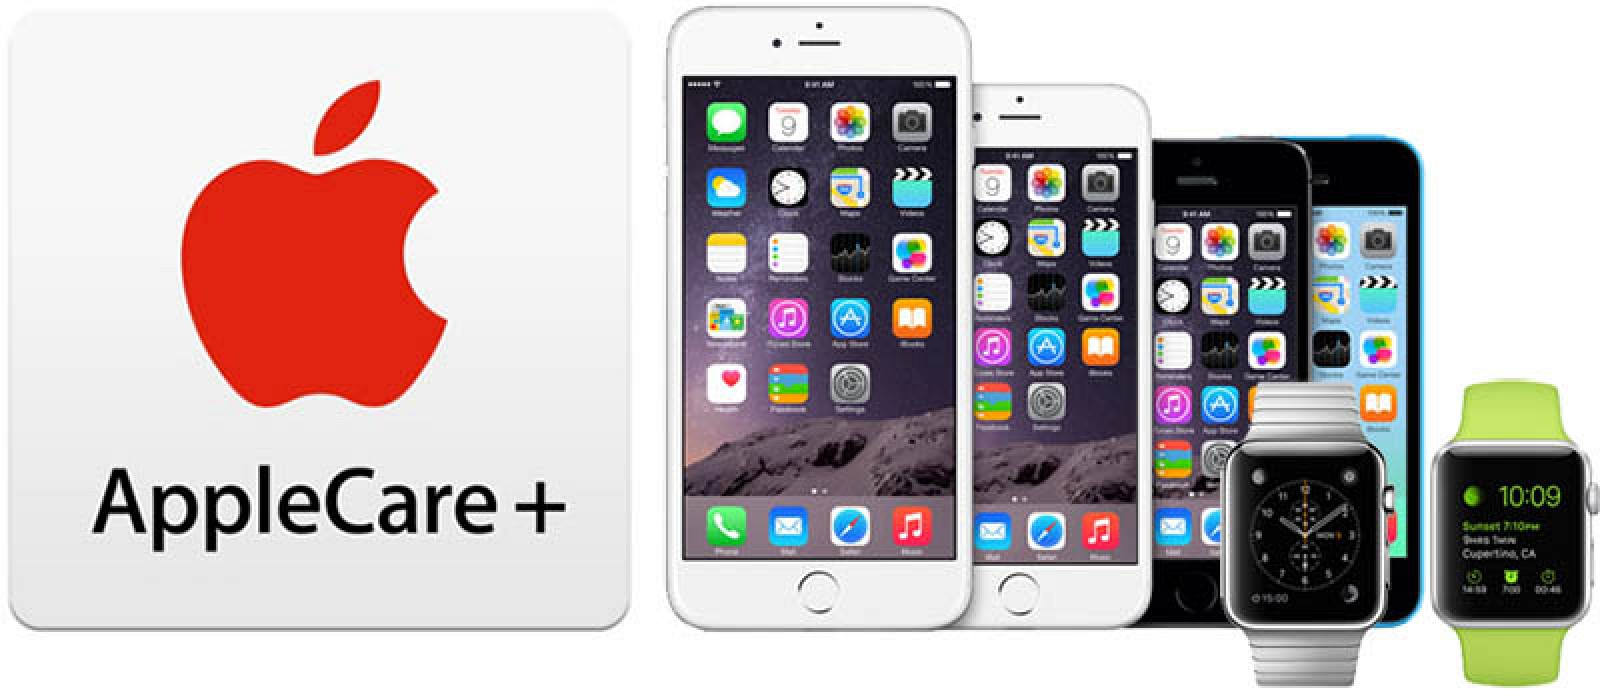 images-AppleCare+